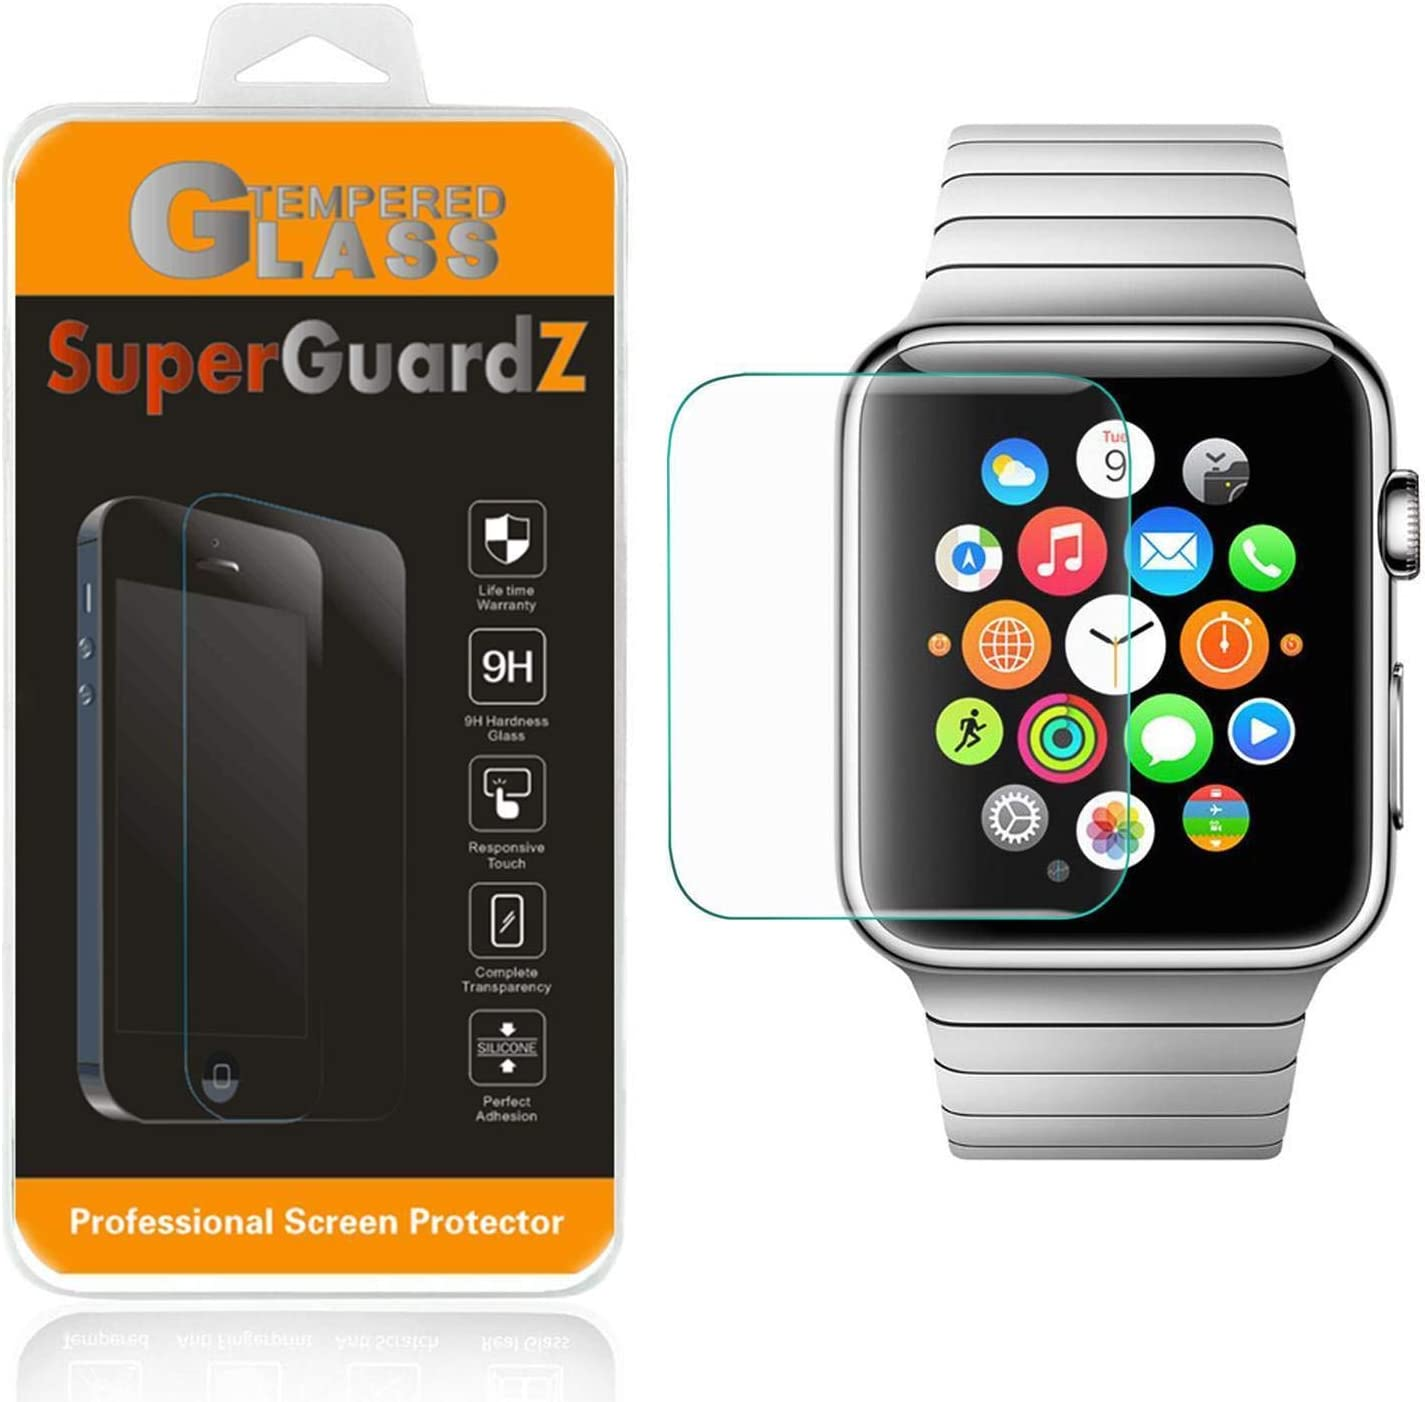 [2-Pack] for Apple Watch Series 4 (44 mm) Screen Protector [Tempered Glass], SuperGuardZ, 9H, 0.3mm, Anti-Scratch, Anti-Bubble [Lifetime Replacement] + LED Stylus Pen